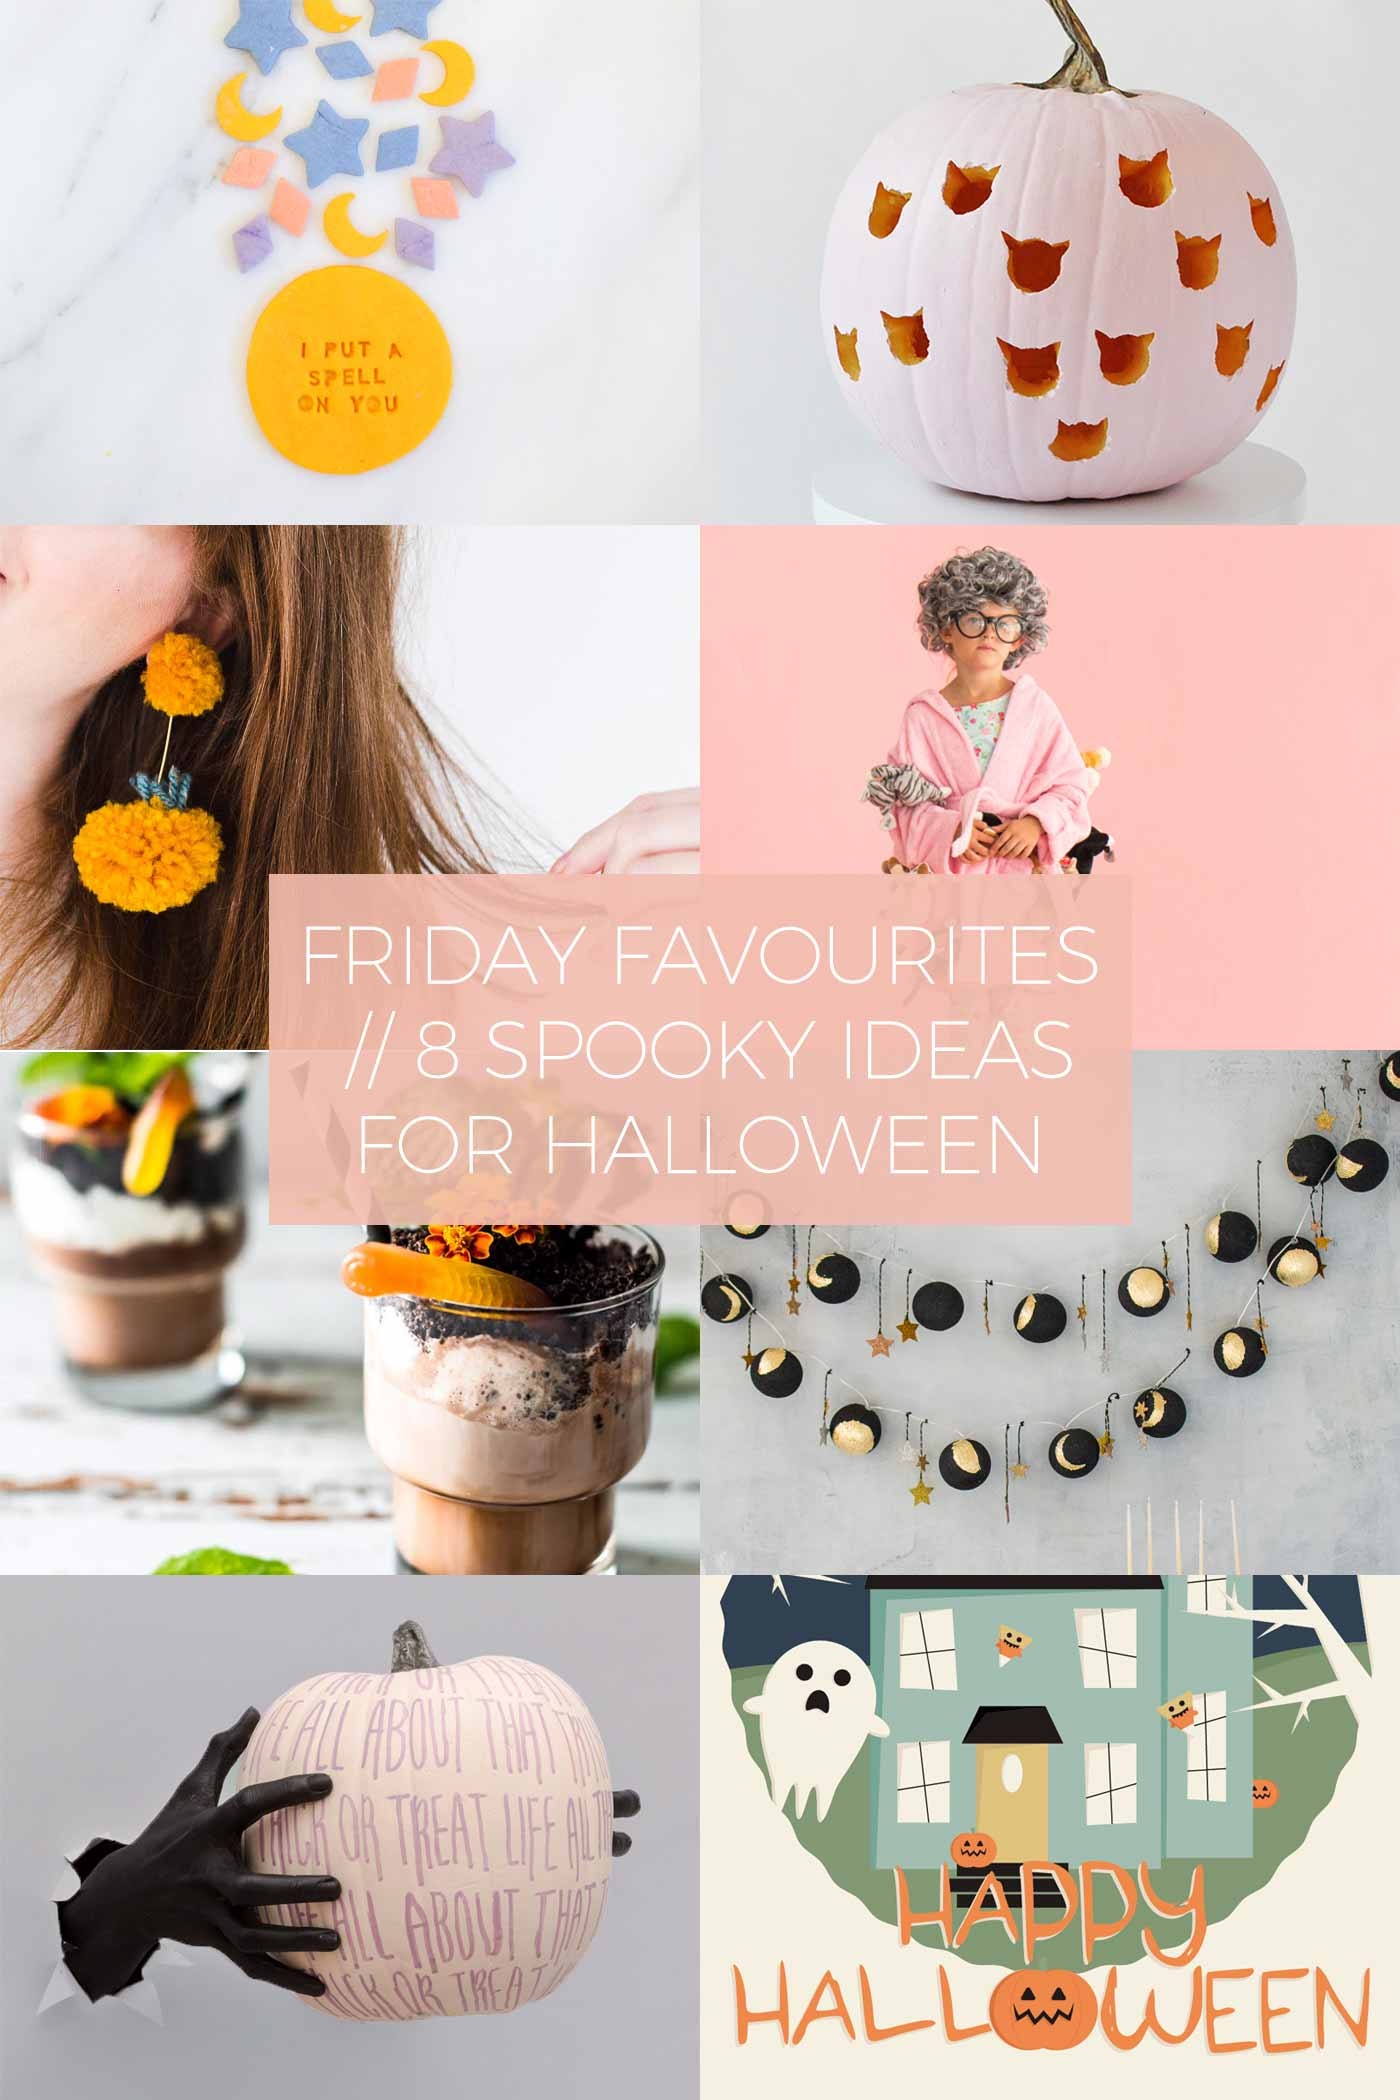 Friday Favourites // 8 Spooky Ideas for Halloween